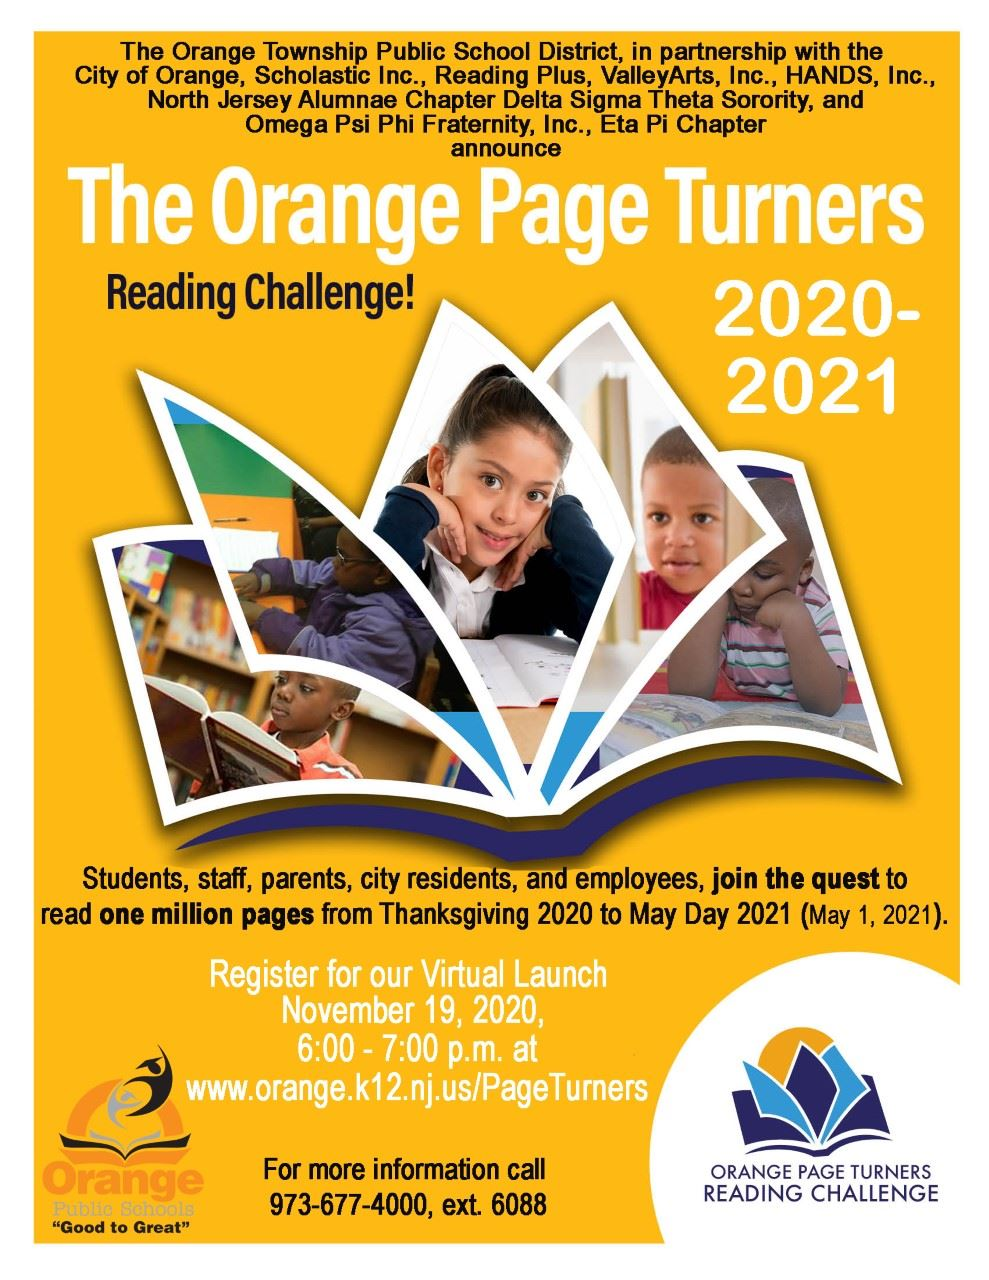 Join the quest to read one million pages from Thanksgiving 2020 to May Day 2021 (May 1, 2021). Regis